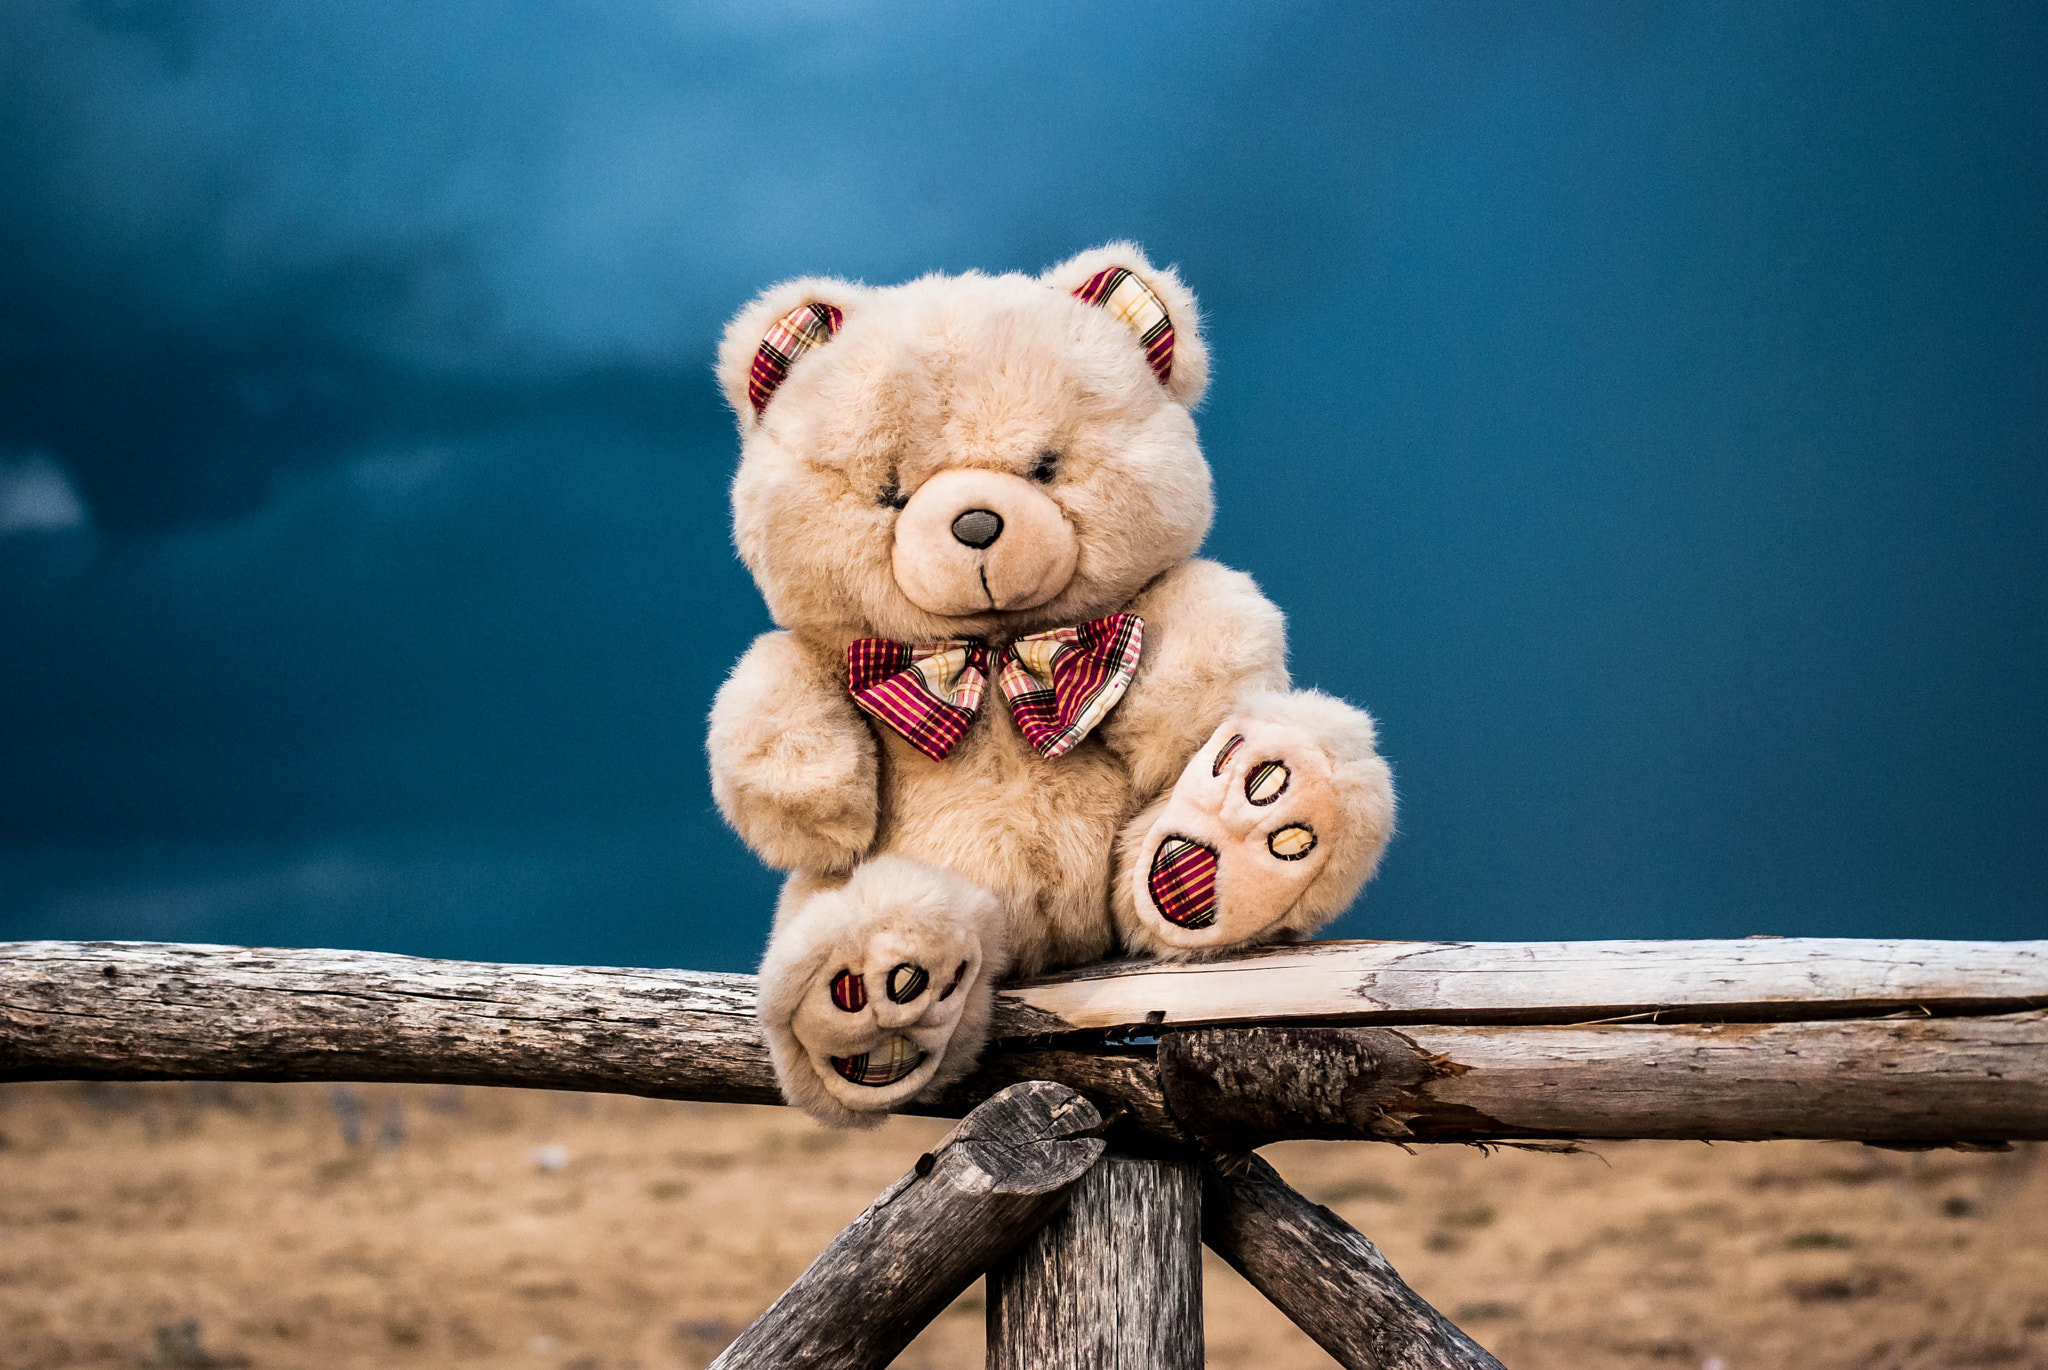 Photograph Country Bear by Giusy Ciampetti on 500px